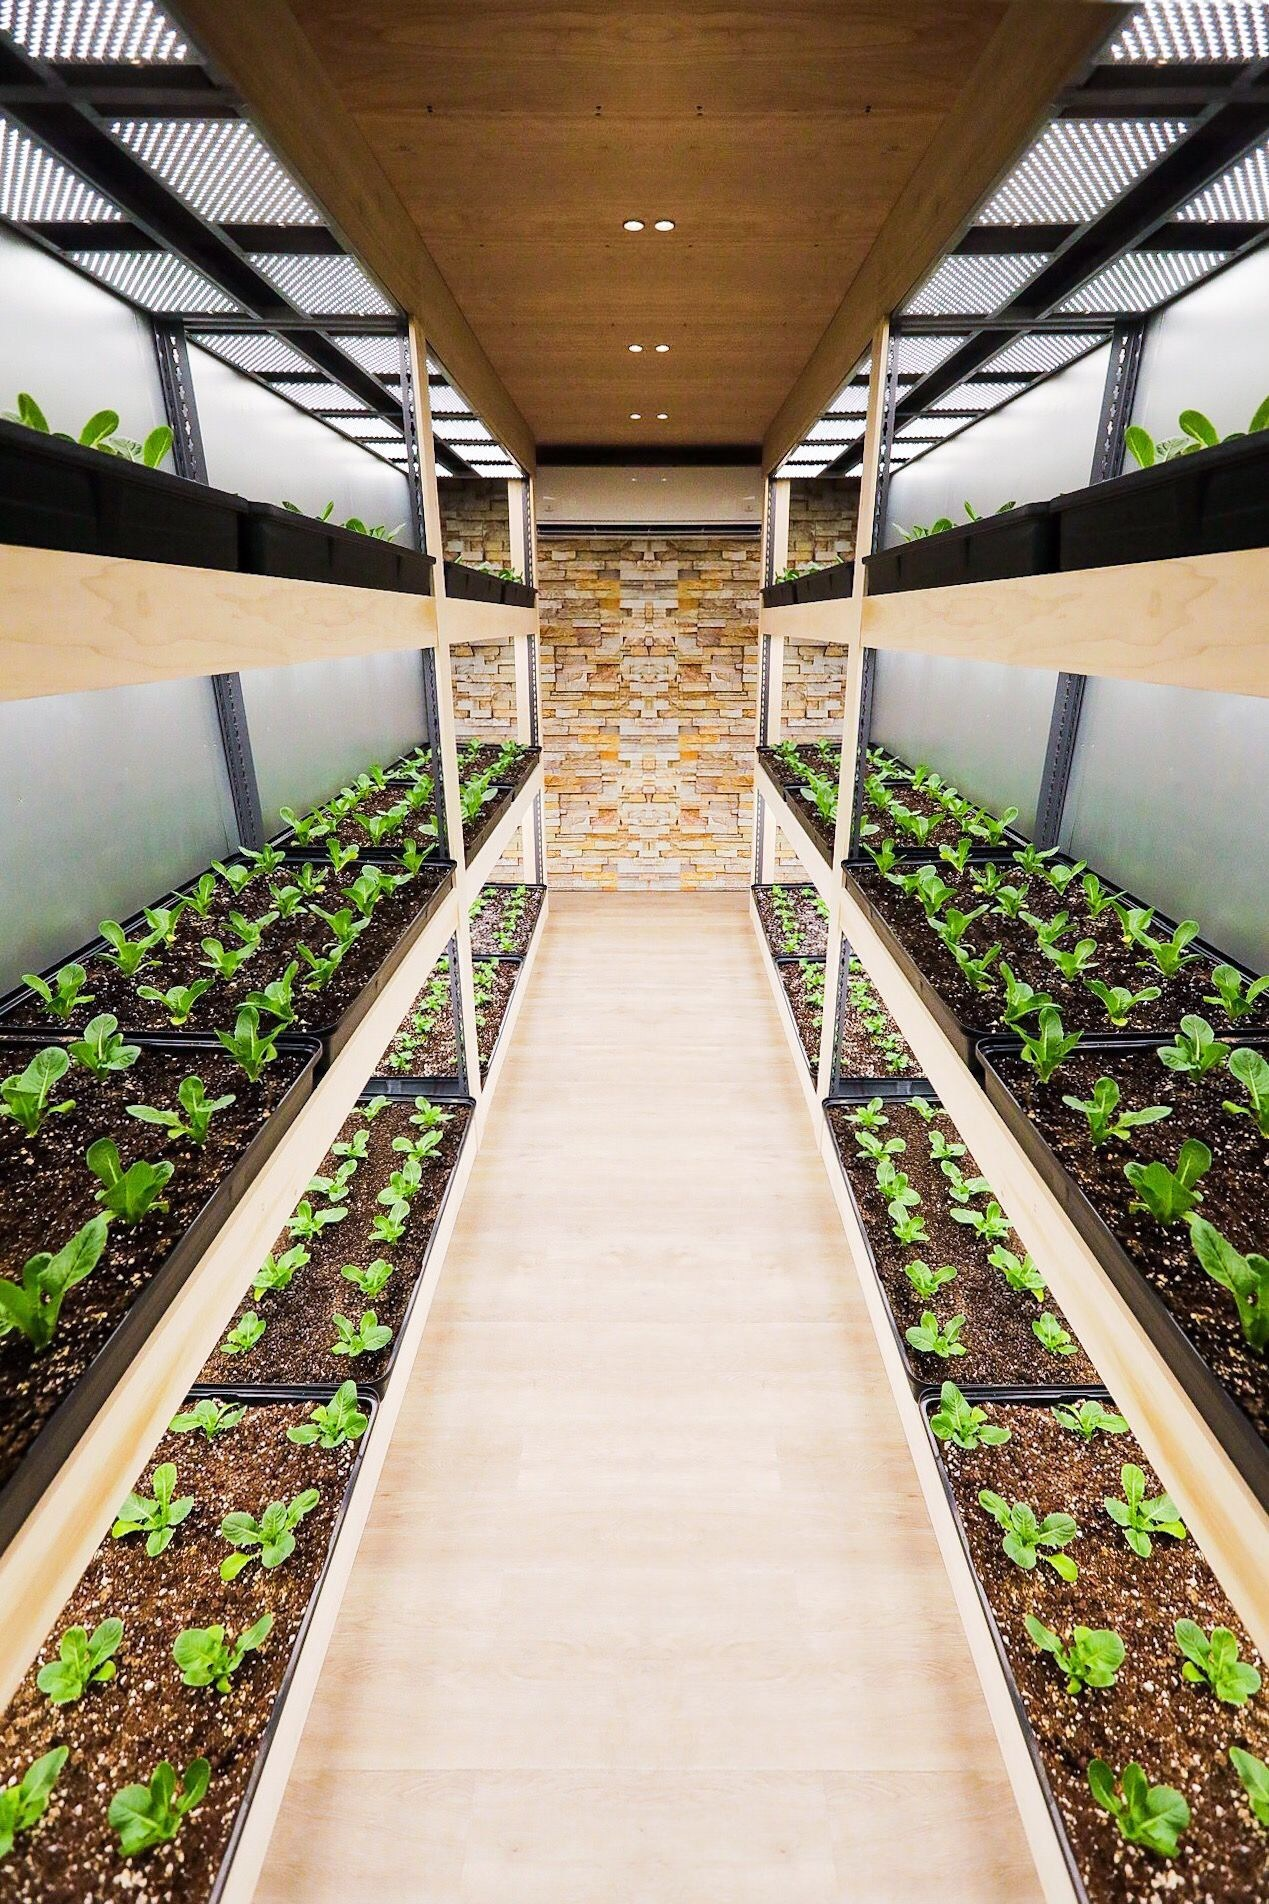 GrowPod's new clean, modular and scalable indoor farms are capable of producing the world's finest, luxury Super Foods.